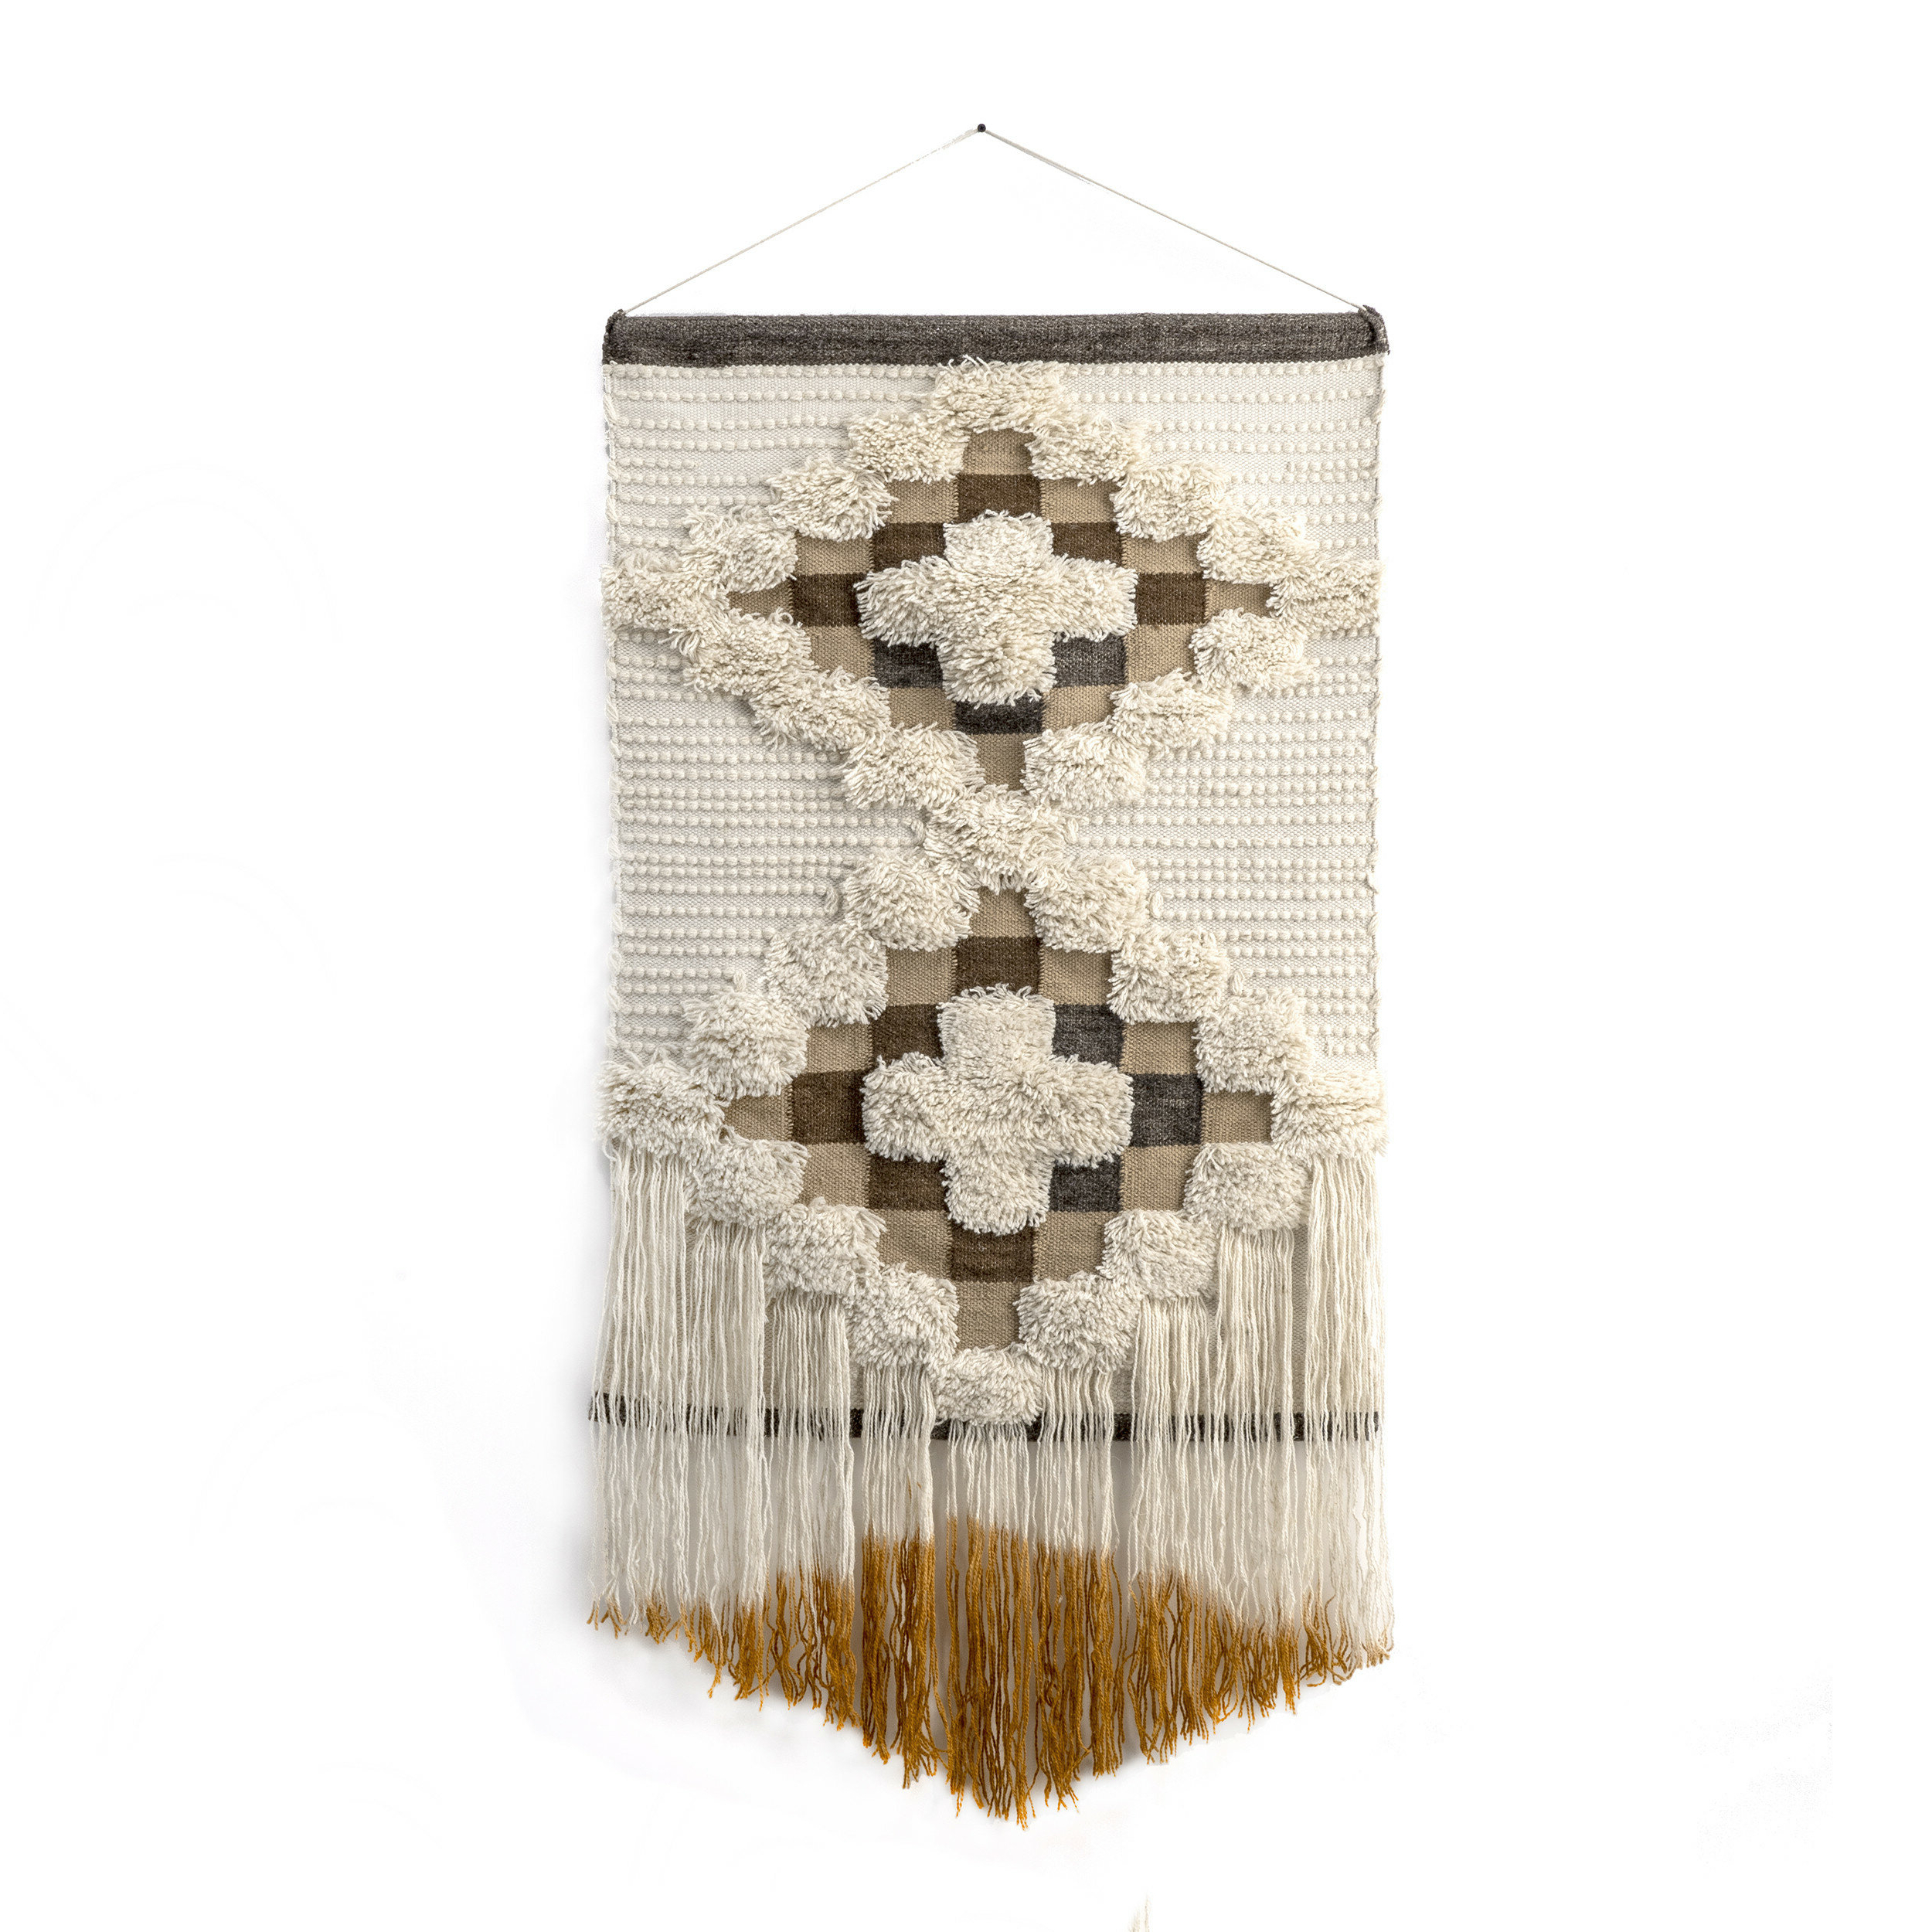 Fashionable Blended Fabric Saber Wall Hangings With Rod In Cotton Wall Hanging With Rod Included (View 10 of 20)